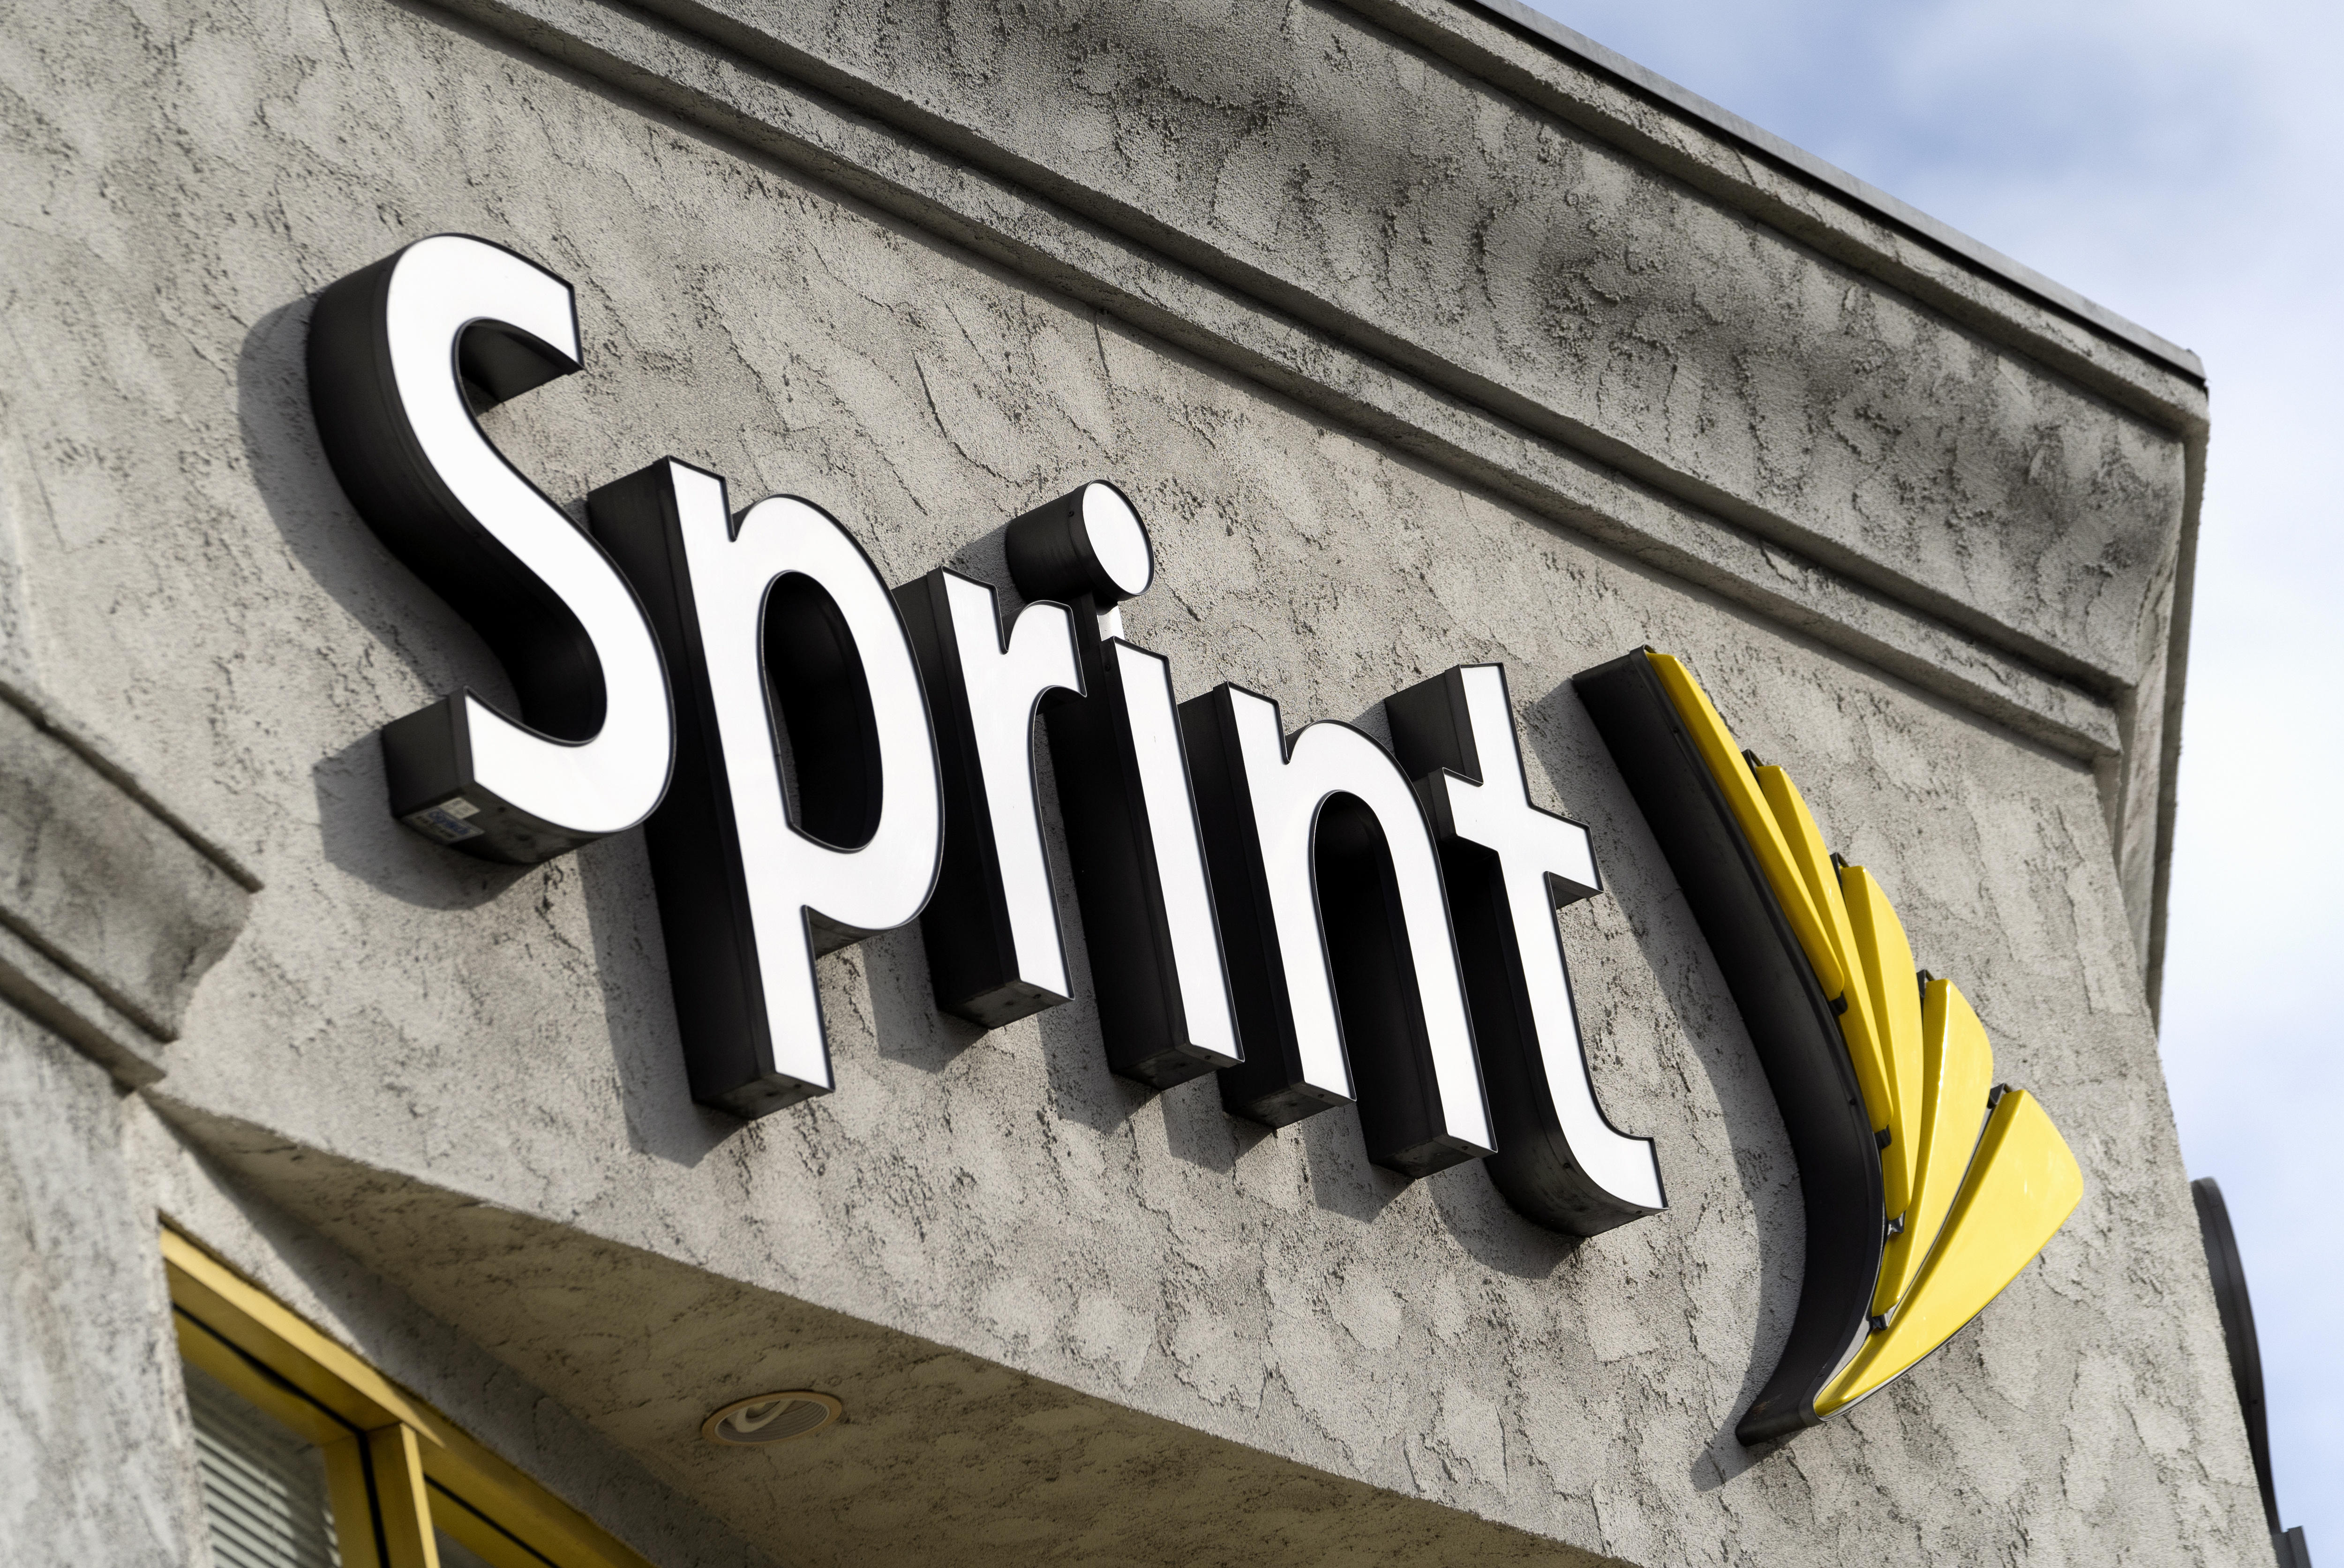 A Sprint store logo seen in Los Angeles, California